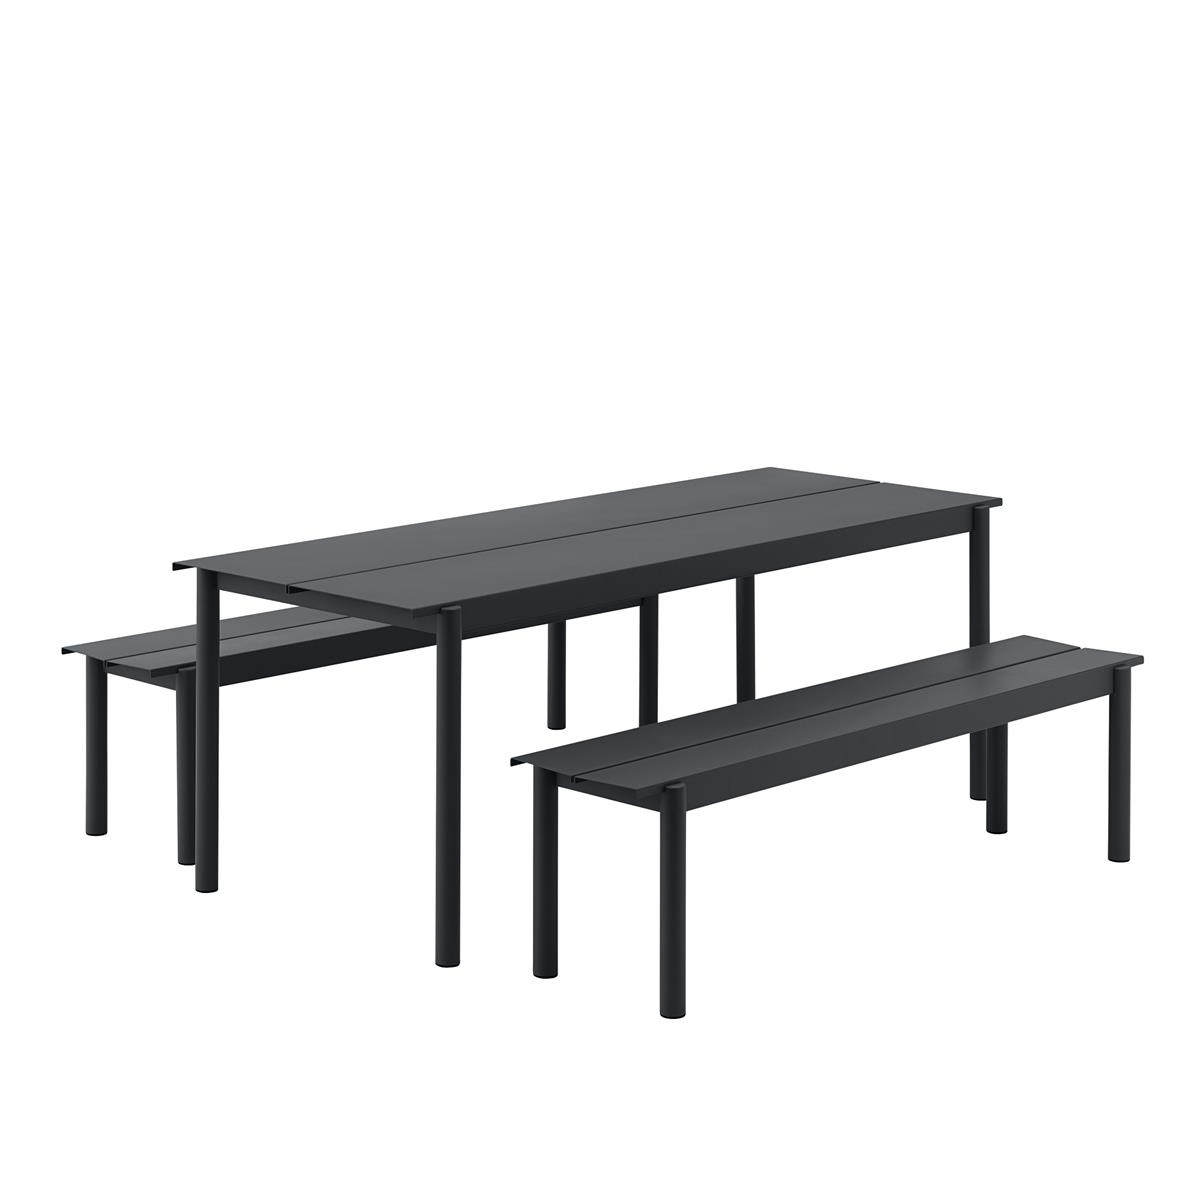 Linear Steel Table 200 x 75 med 2 Stk. Linear Steel Bench L:170. Black.